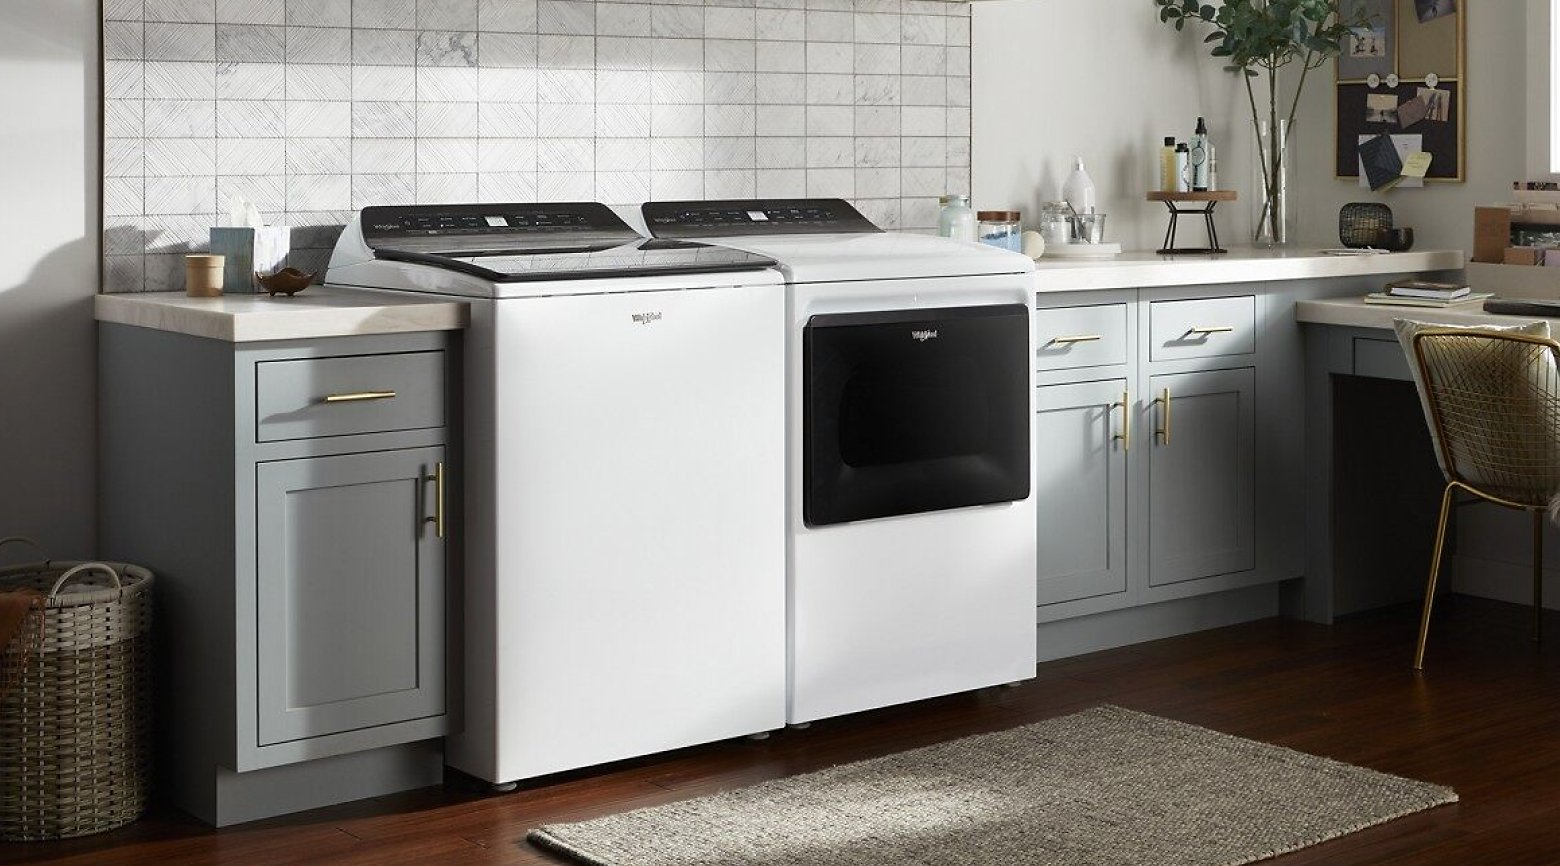 A Whirlpool® Washer and Dryer pair.